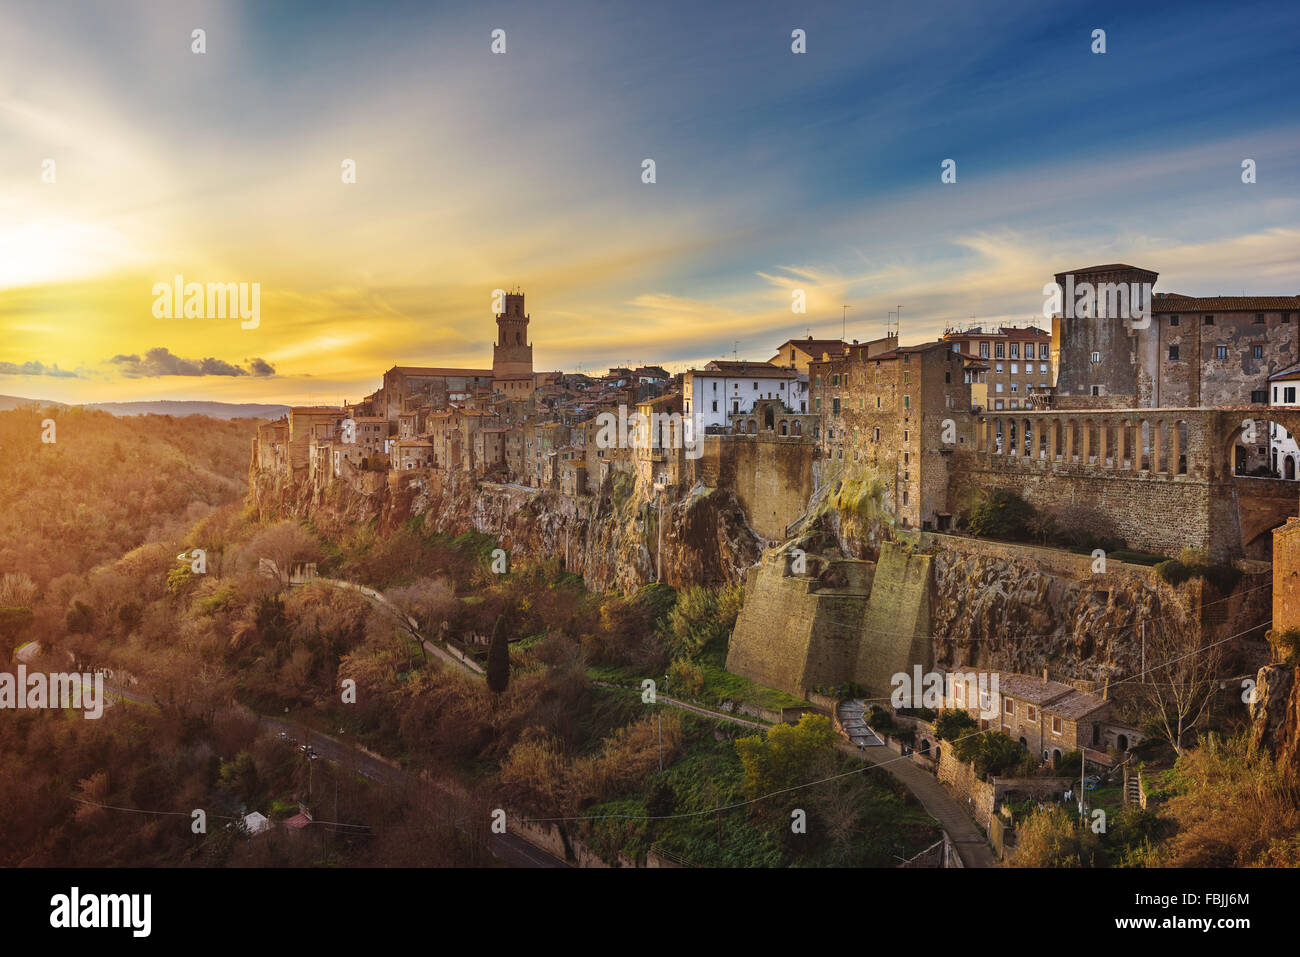 Panorama of the medieval town of Etruscan in Tuscany, Pitigliano. - Stock Image